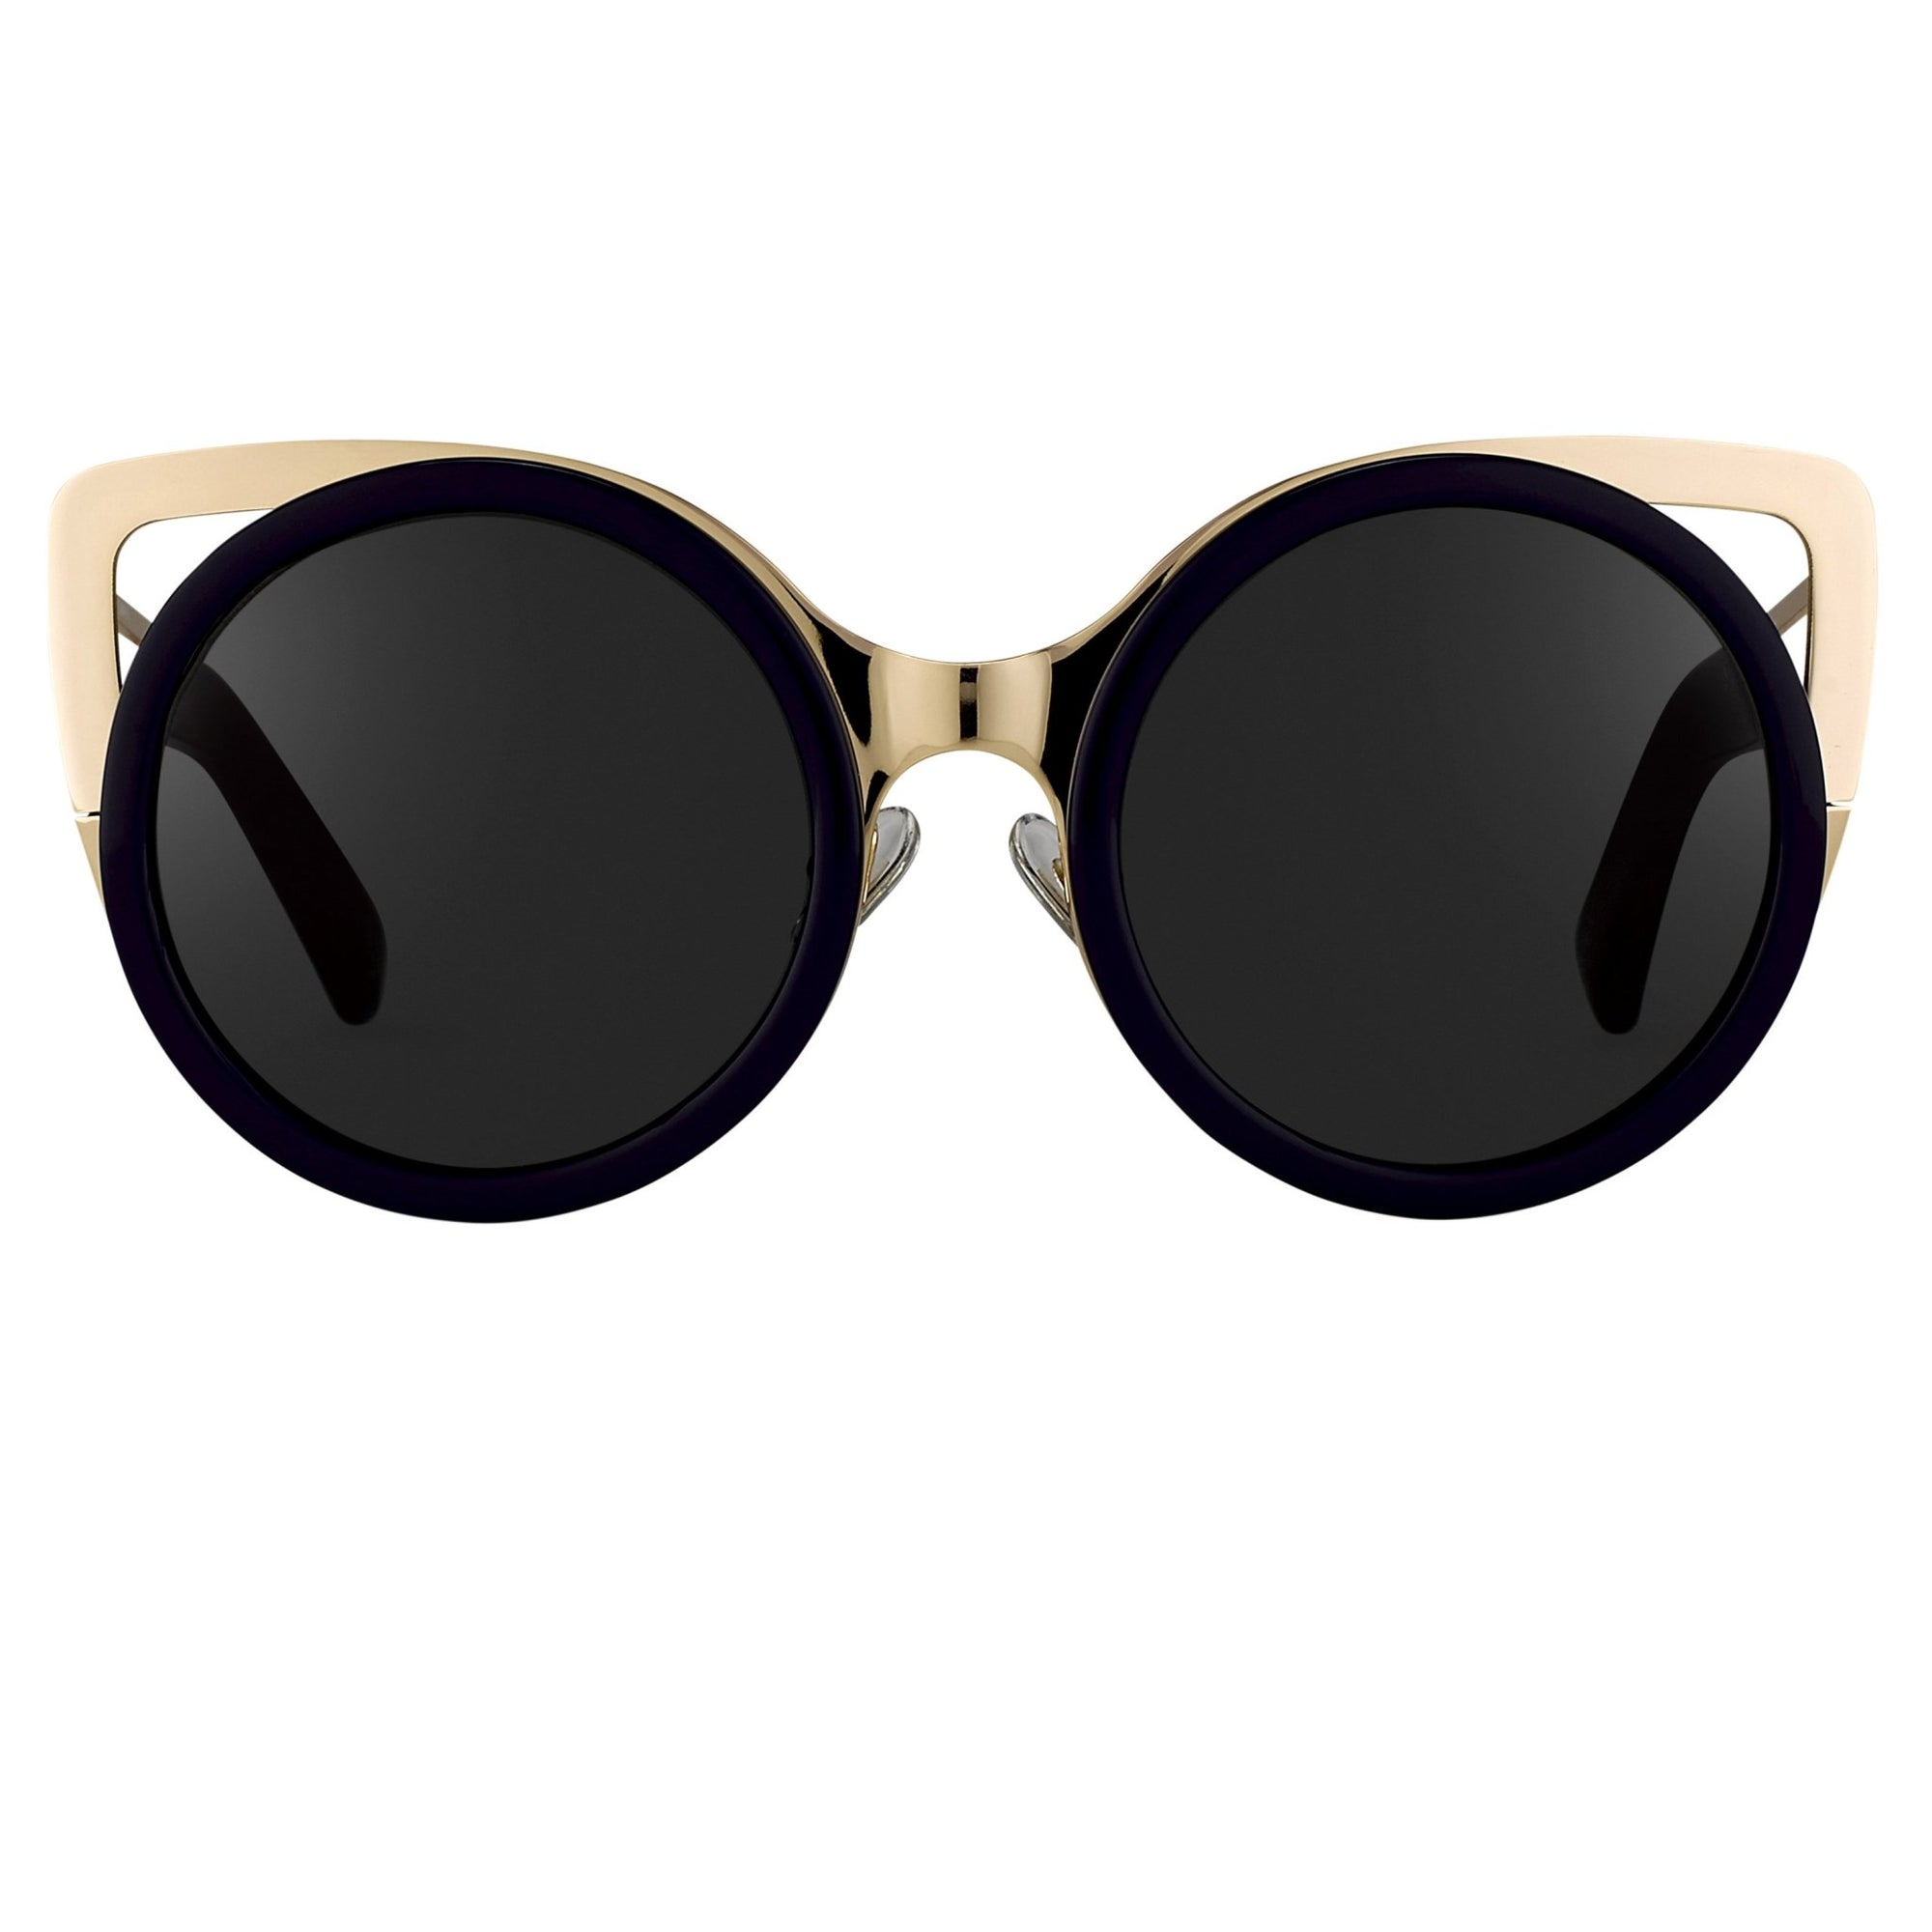 Erdem Women Sunglasses Cat Eye Navy Light Gold with Grey Graduated Lenses Category 3 EDM4C5SUN - Watches & Crystals